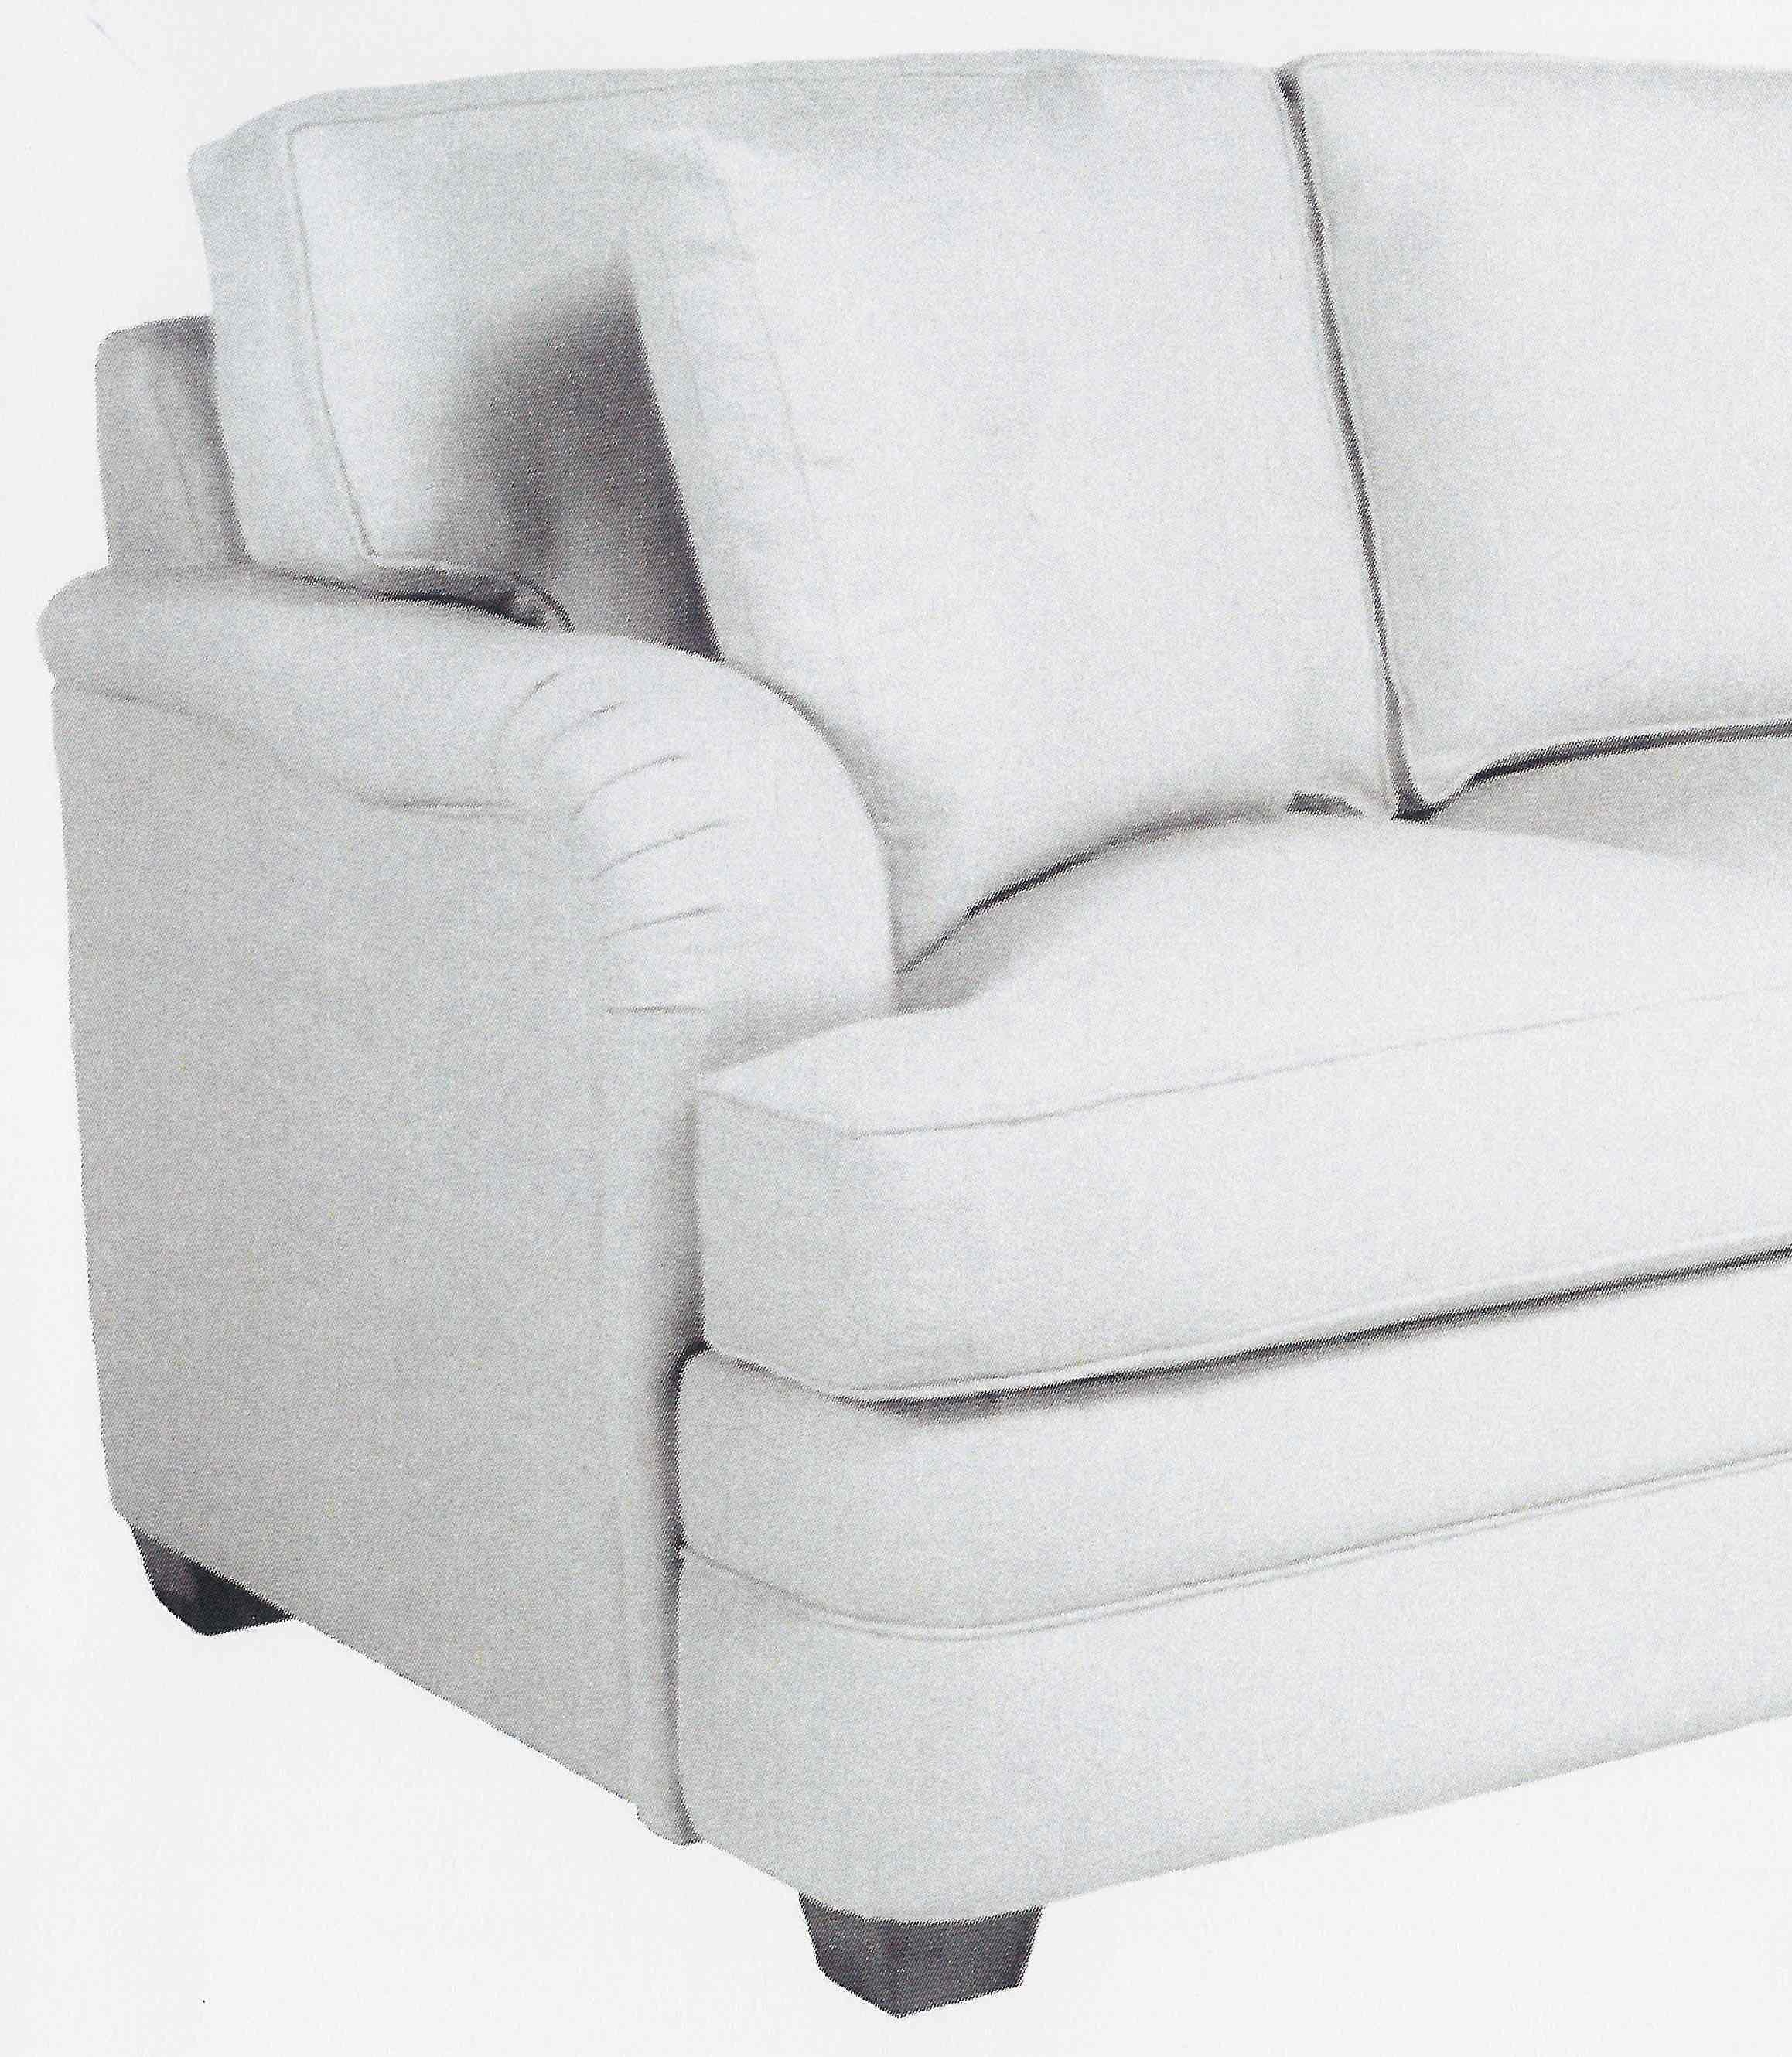 Slipcovers for Sofas with Cushions Separate | Chaise Slipcover | Overstuffed Chair Cover